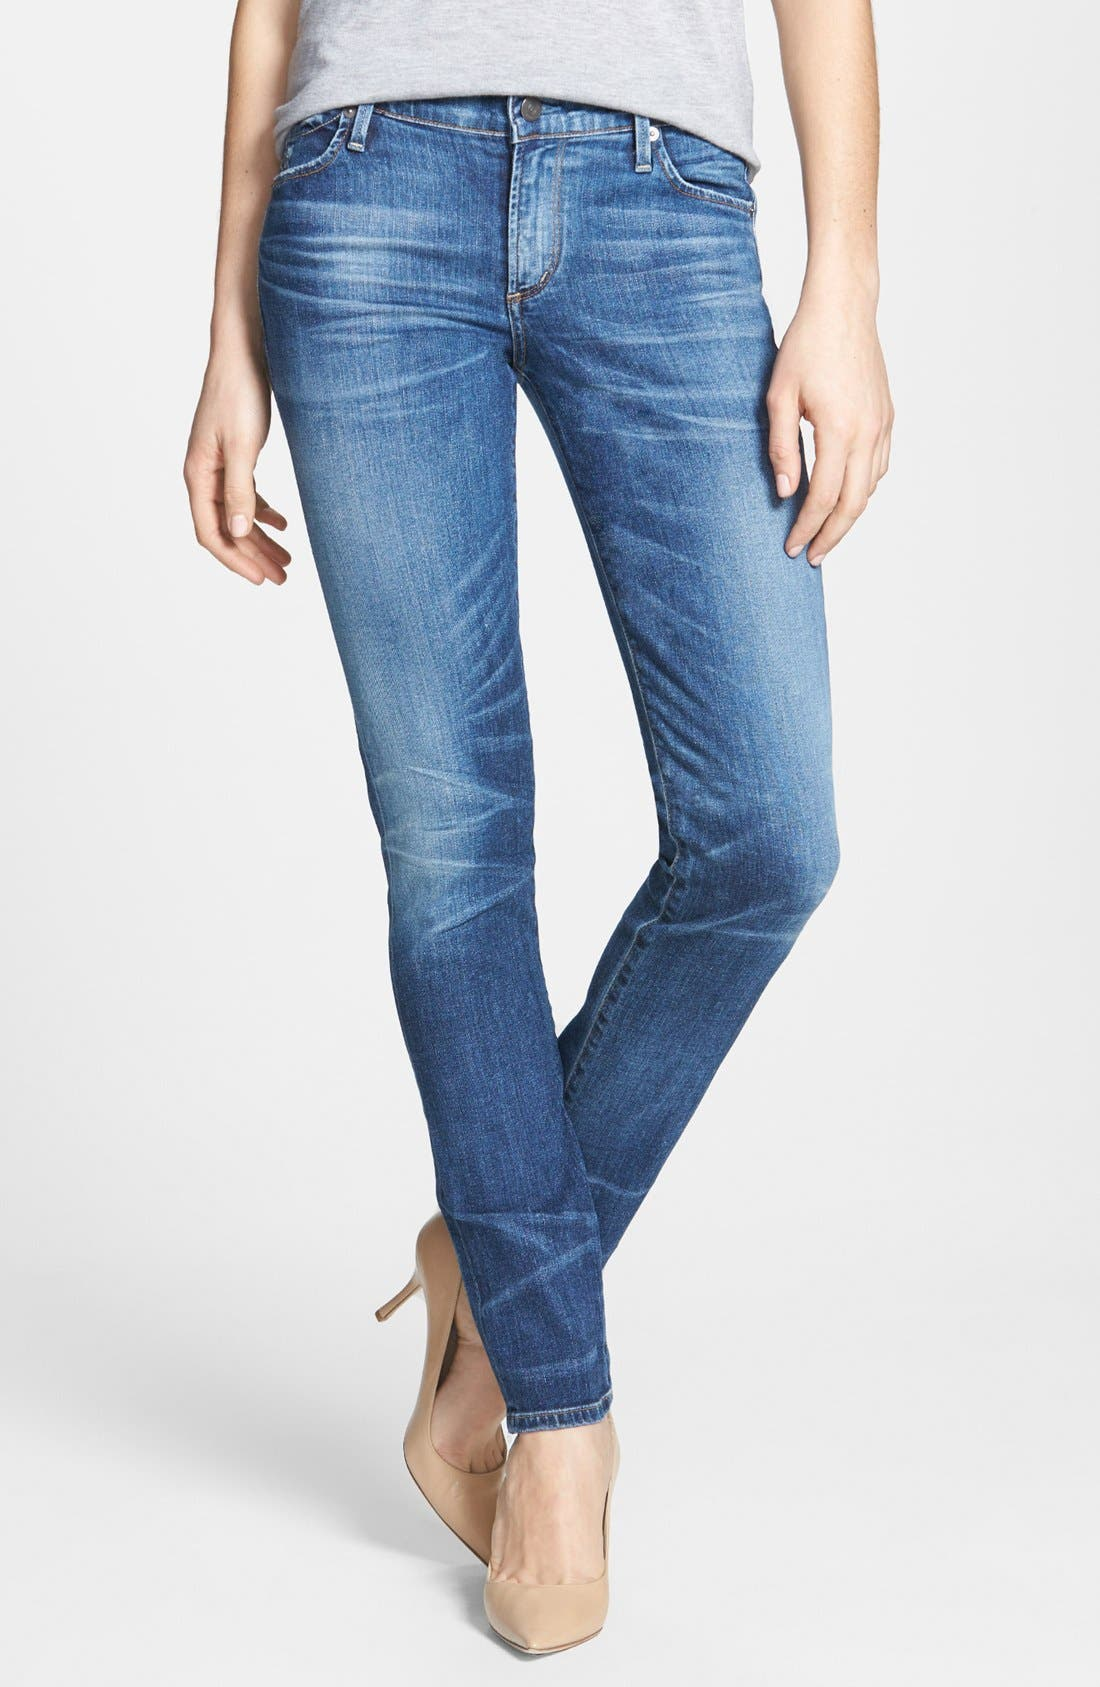 Alternate Image 1 Selected - Citizens of Humanity Whiskered Skinny Jeans